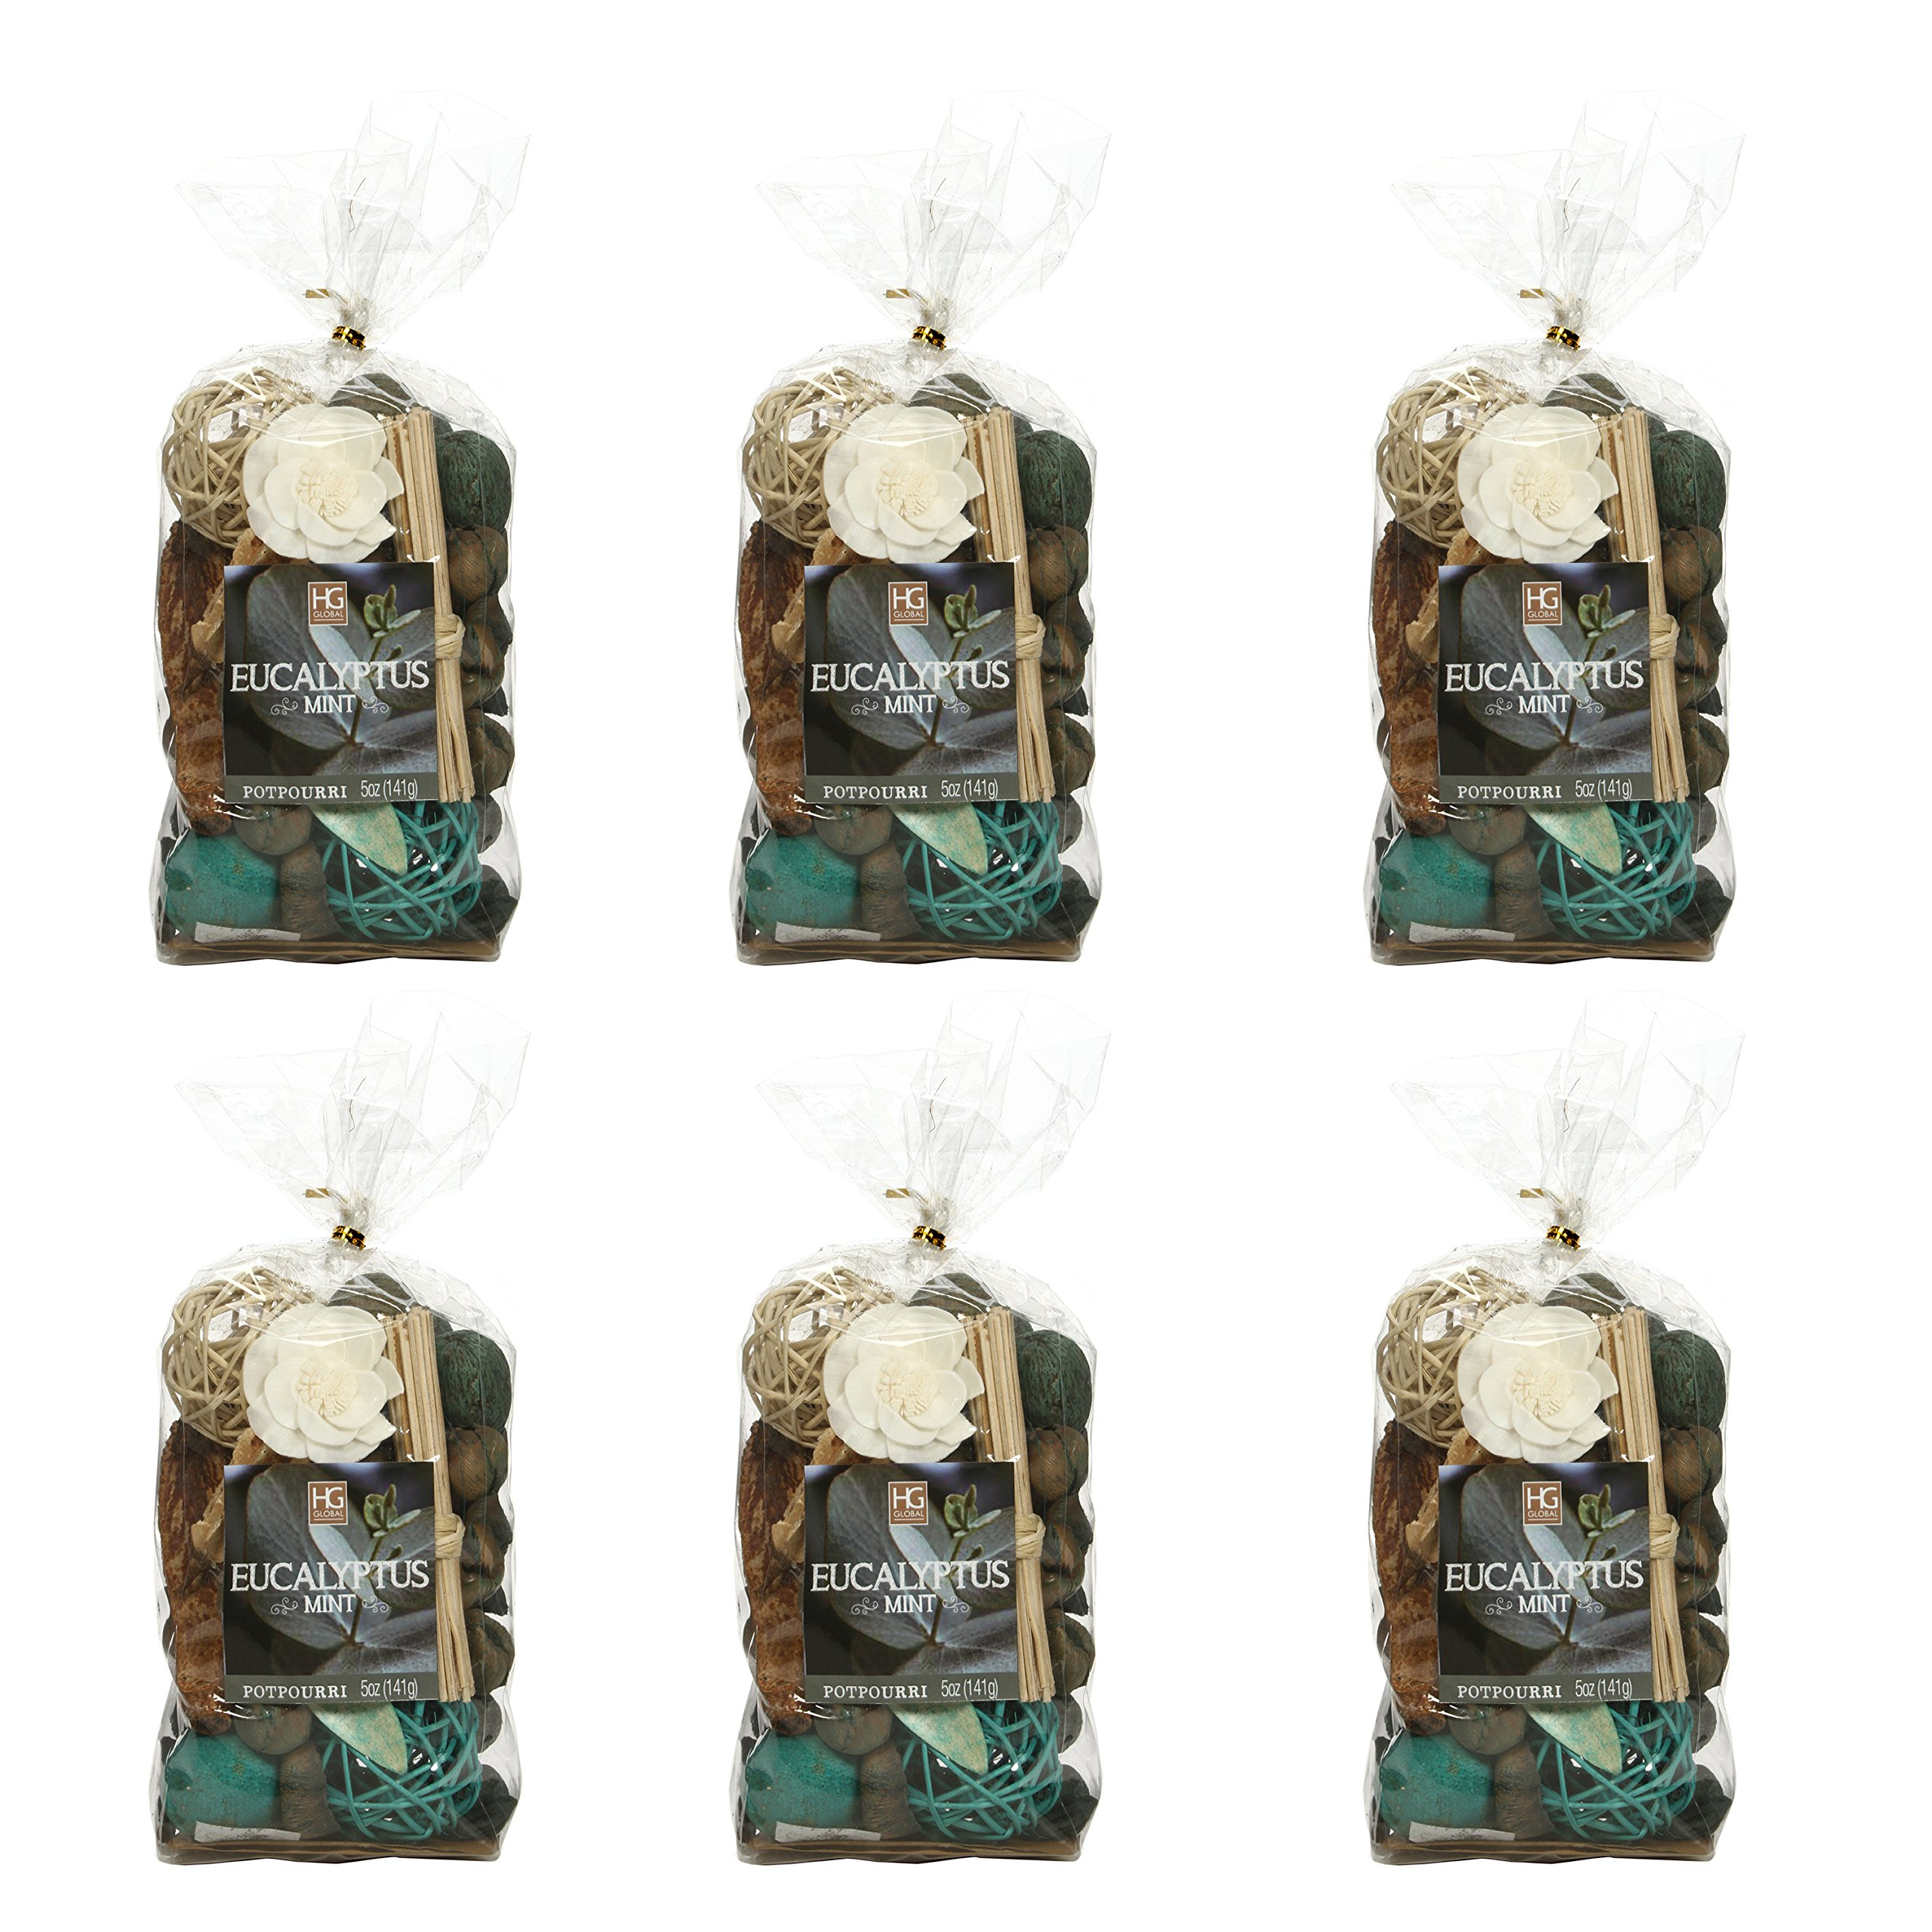 Hosley Set of 6 Bags, 5 Oz Each, Total 30 Oz Eucalyptus Mint Chunky Potpourri. Ideal for Party Favor, Weddings, spa, Reiki, Meditation, Bathroom Settings. O3